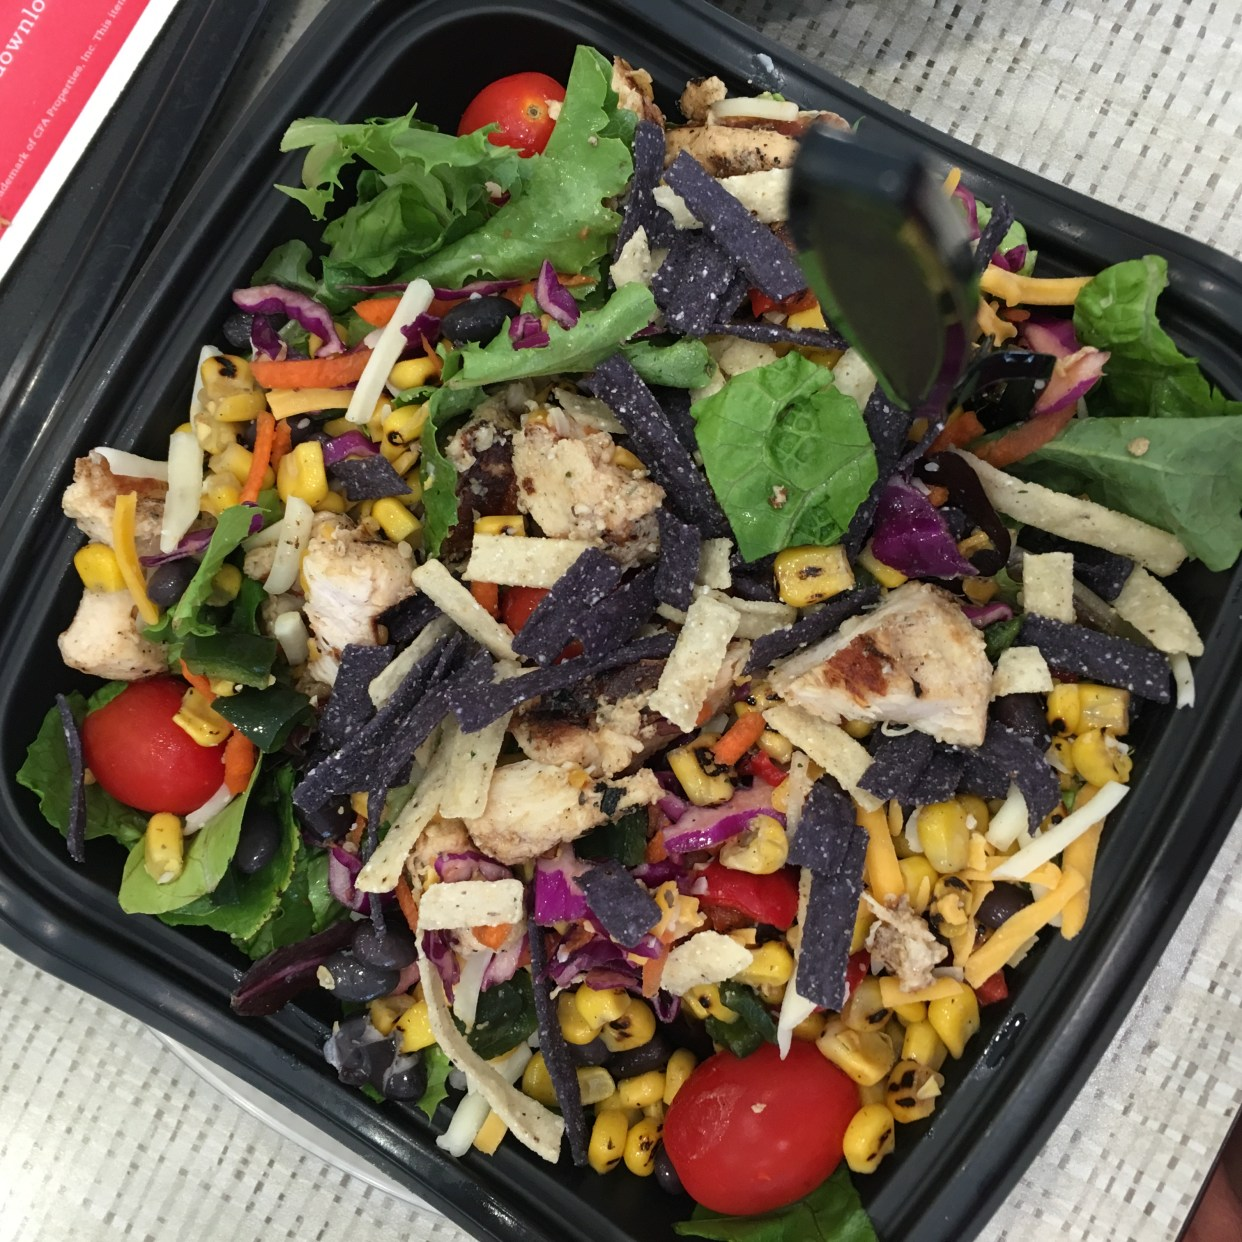 I Adore What I Love Blog // WEEKLY WINS #21 // Chick-fil-A salad // www.iadorewhatilove.com #iadorewhatilove